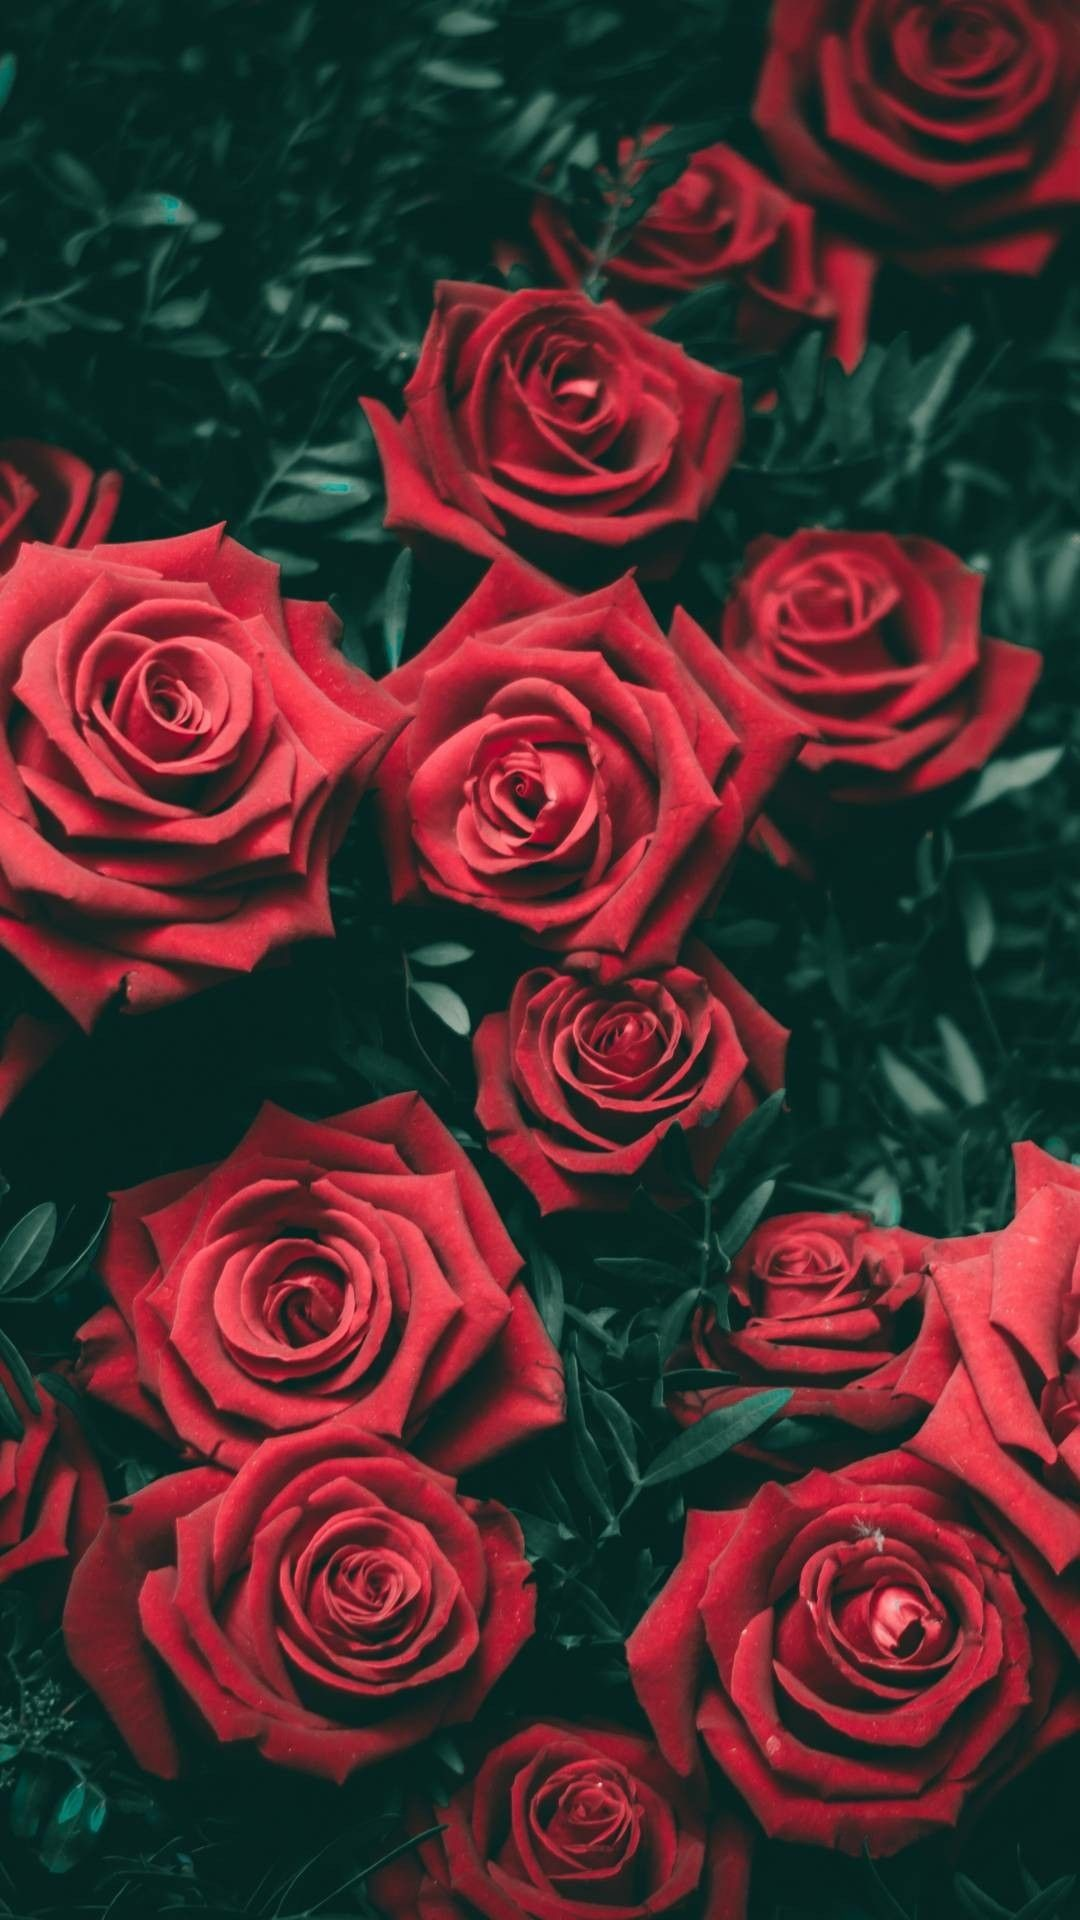 Res: 1080x1920, Red Rose Wallpaper